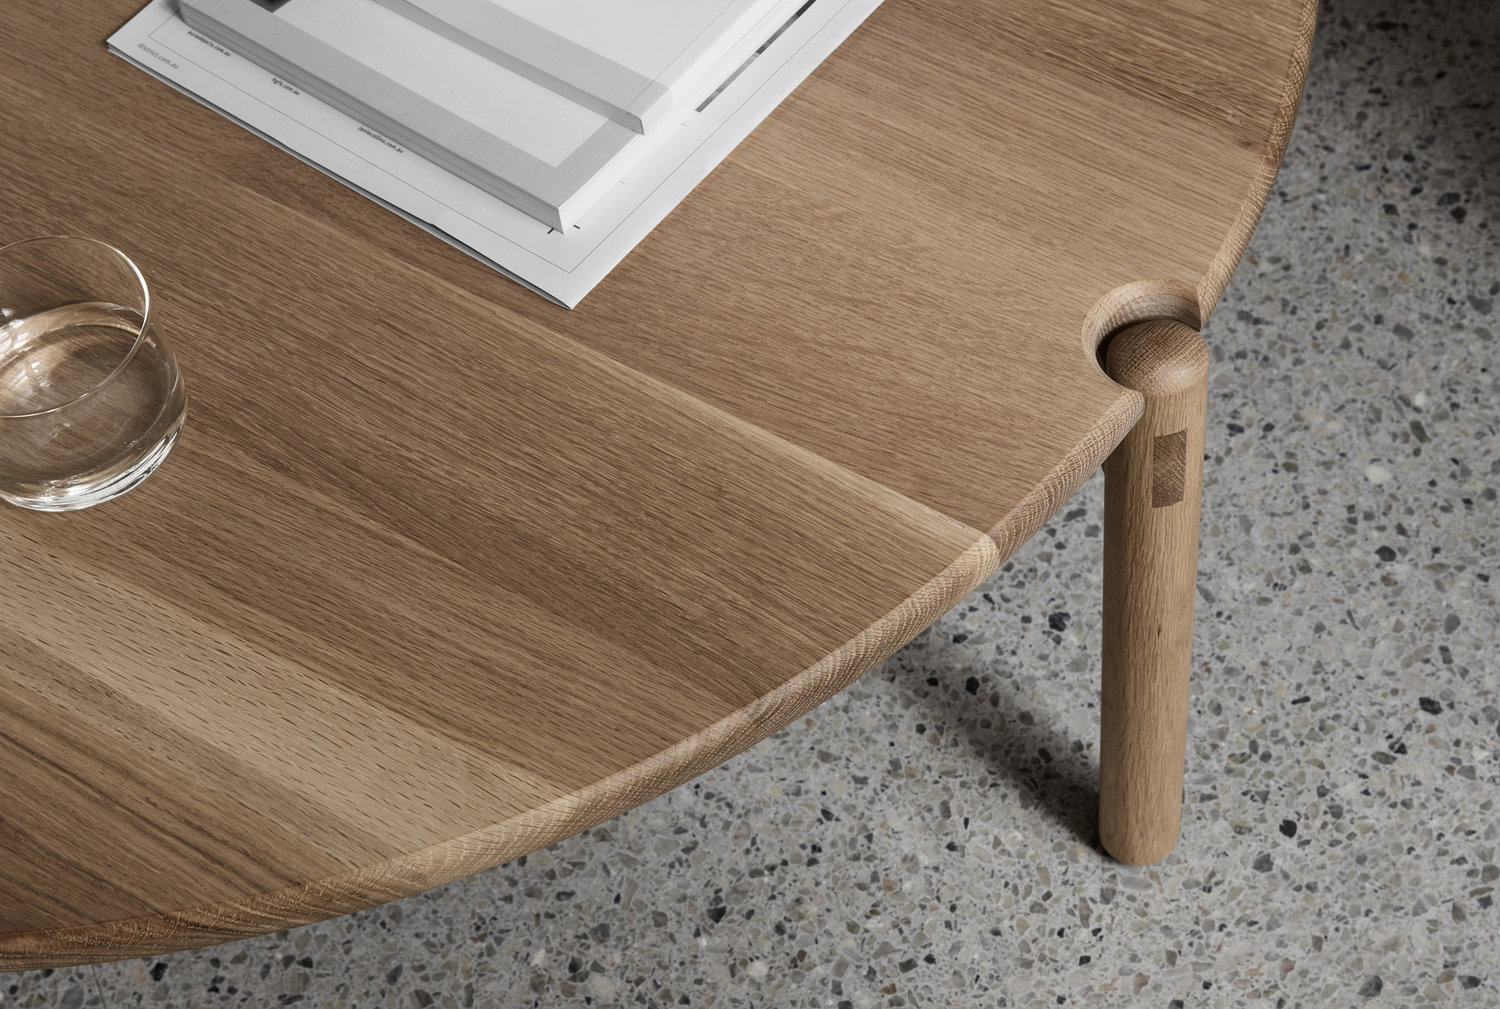 Made by Morgen understands that all design needs are unique so this piece is completely customisable according to materials, dimensions and finish.